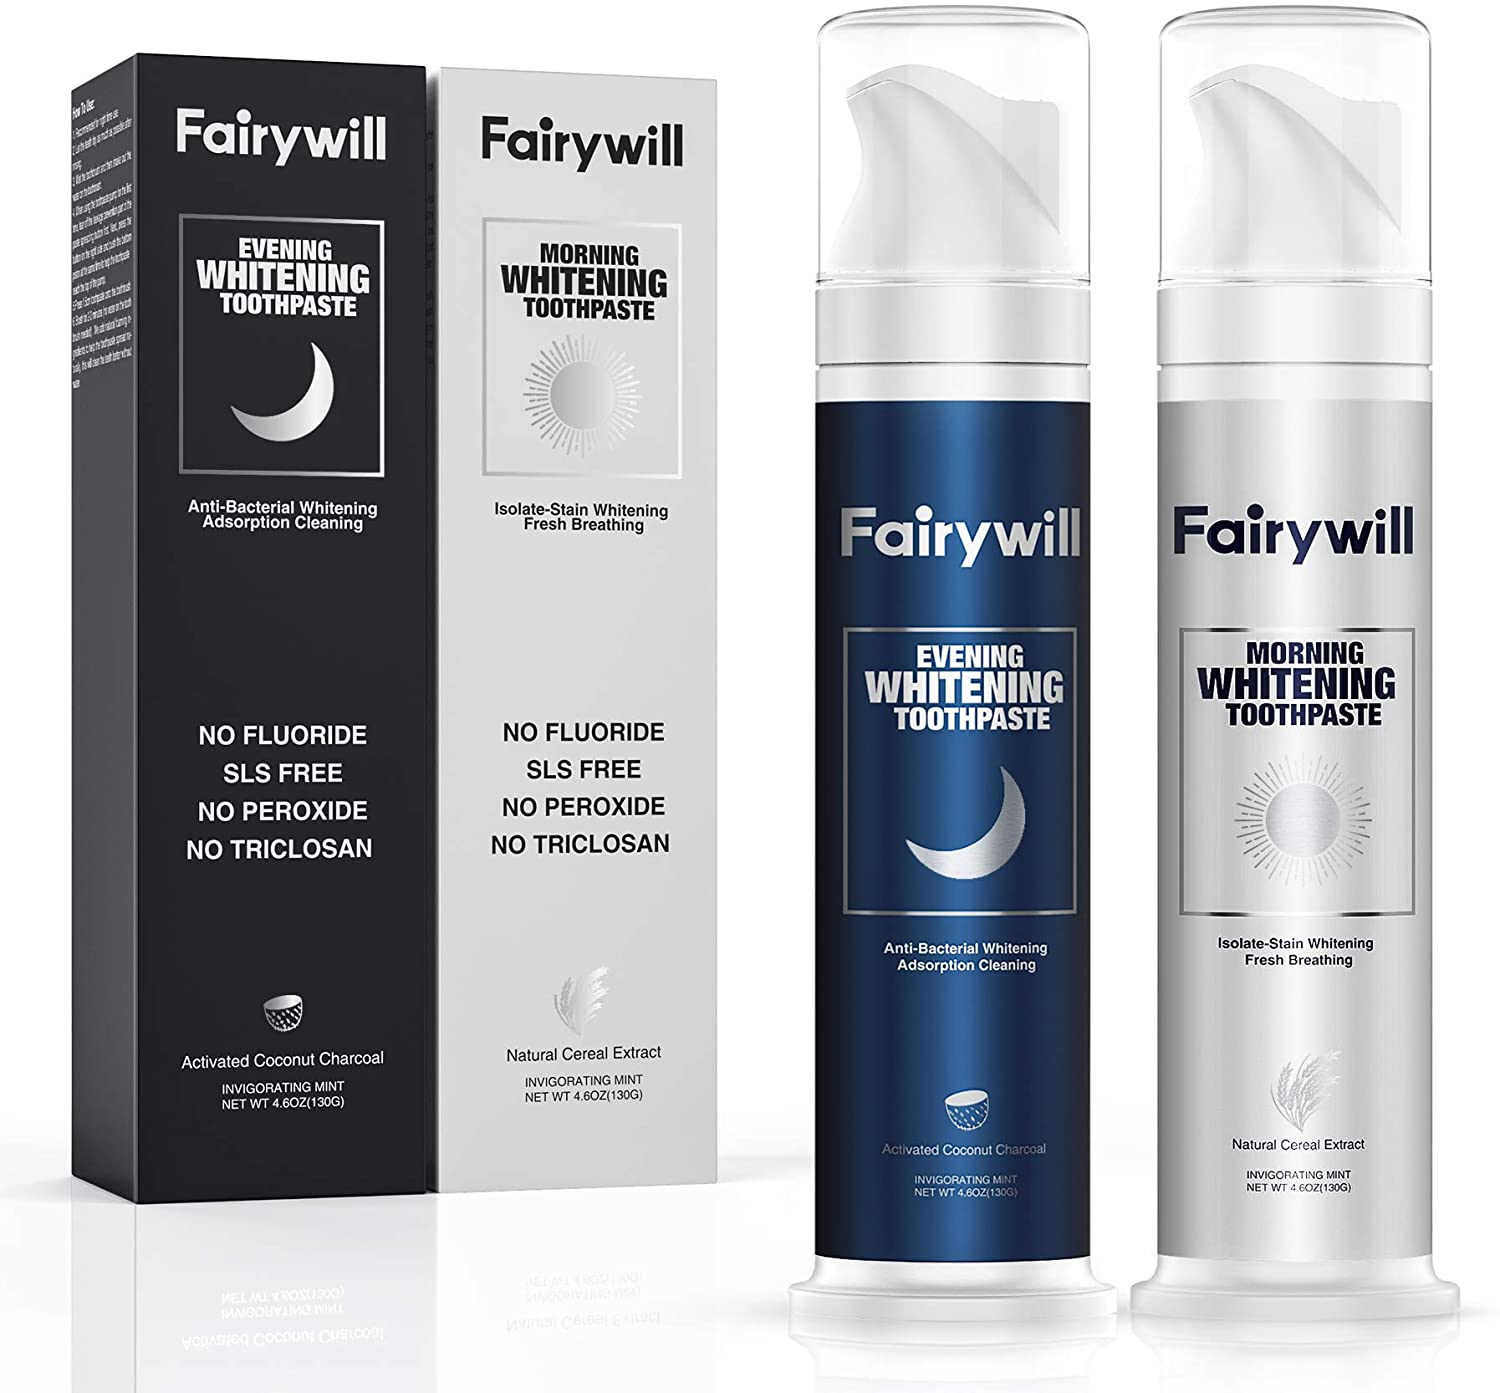 Fairywill Teeth Whitening Natural Toothpaste Sets 2 Pack Nature Organic Teeth Whitener